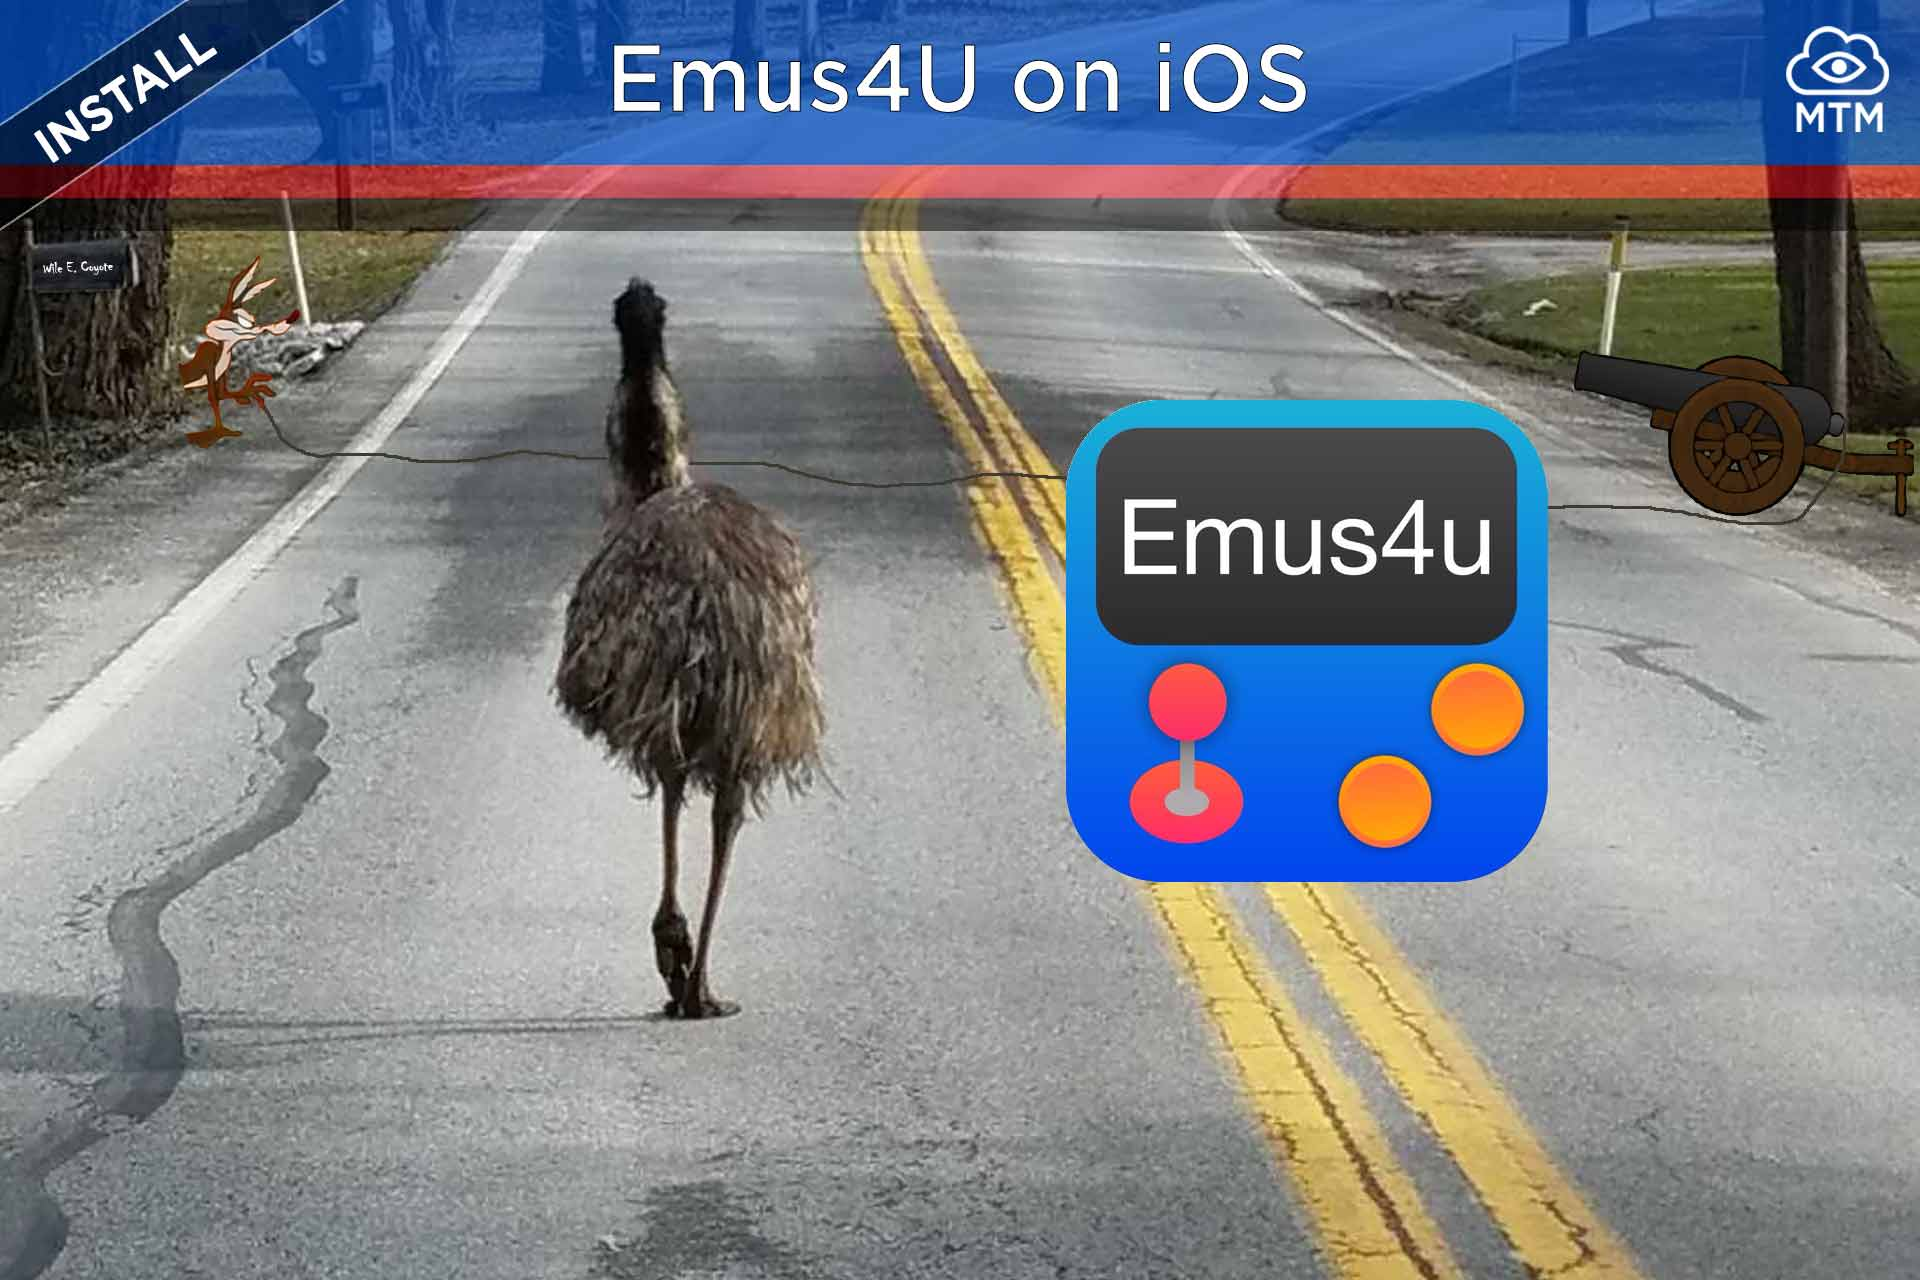 Emus4U Download for iOS Install on iPhone, iPad, iPod Touch